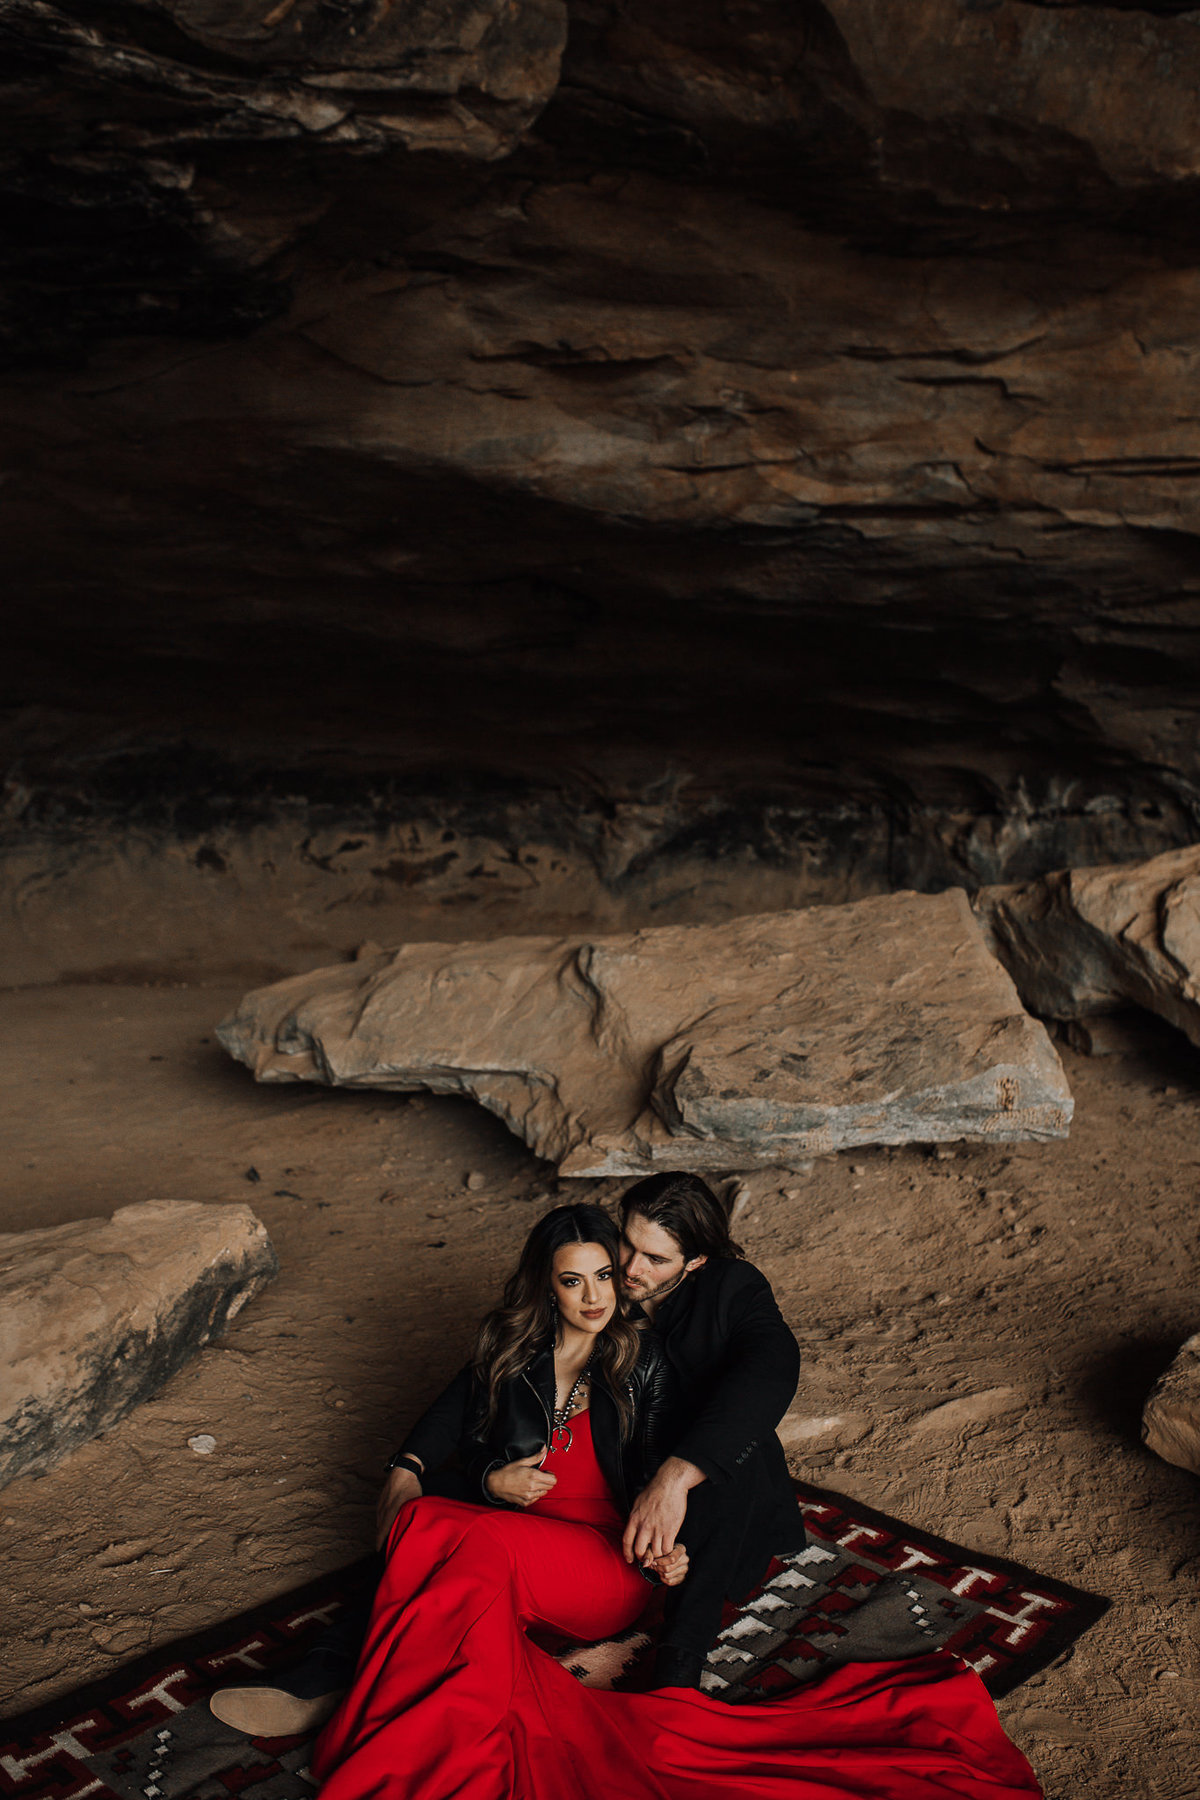 fernanda-and-great-petit-jean-state-park-arkansas-adventerous-couples-engagement-session-23